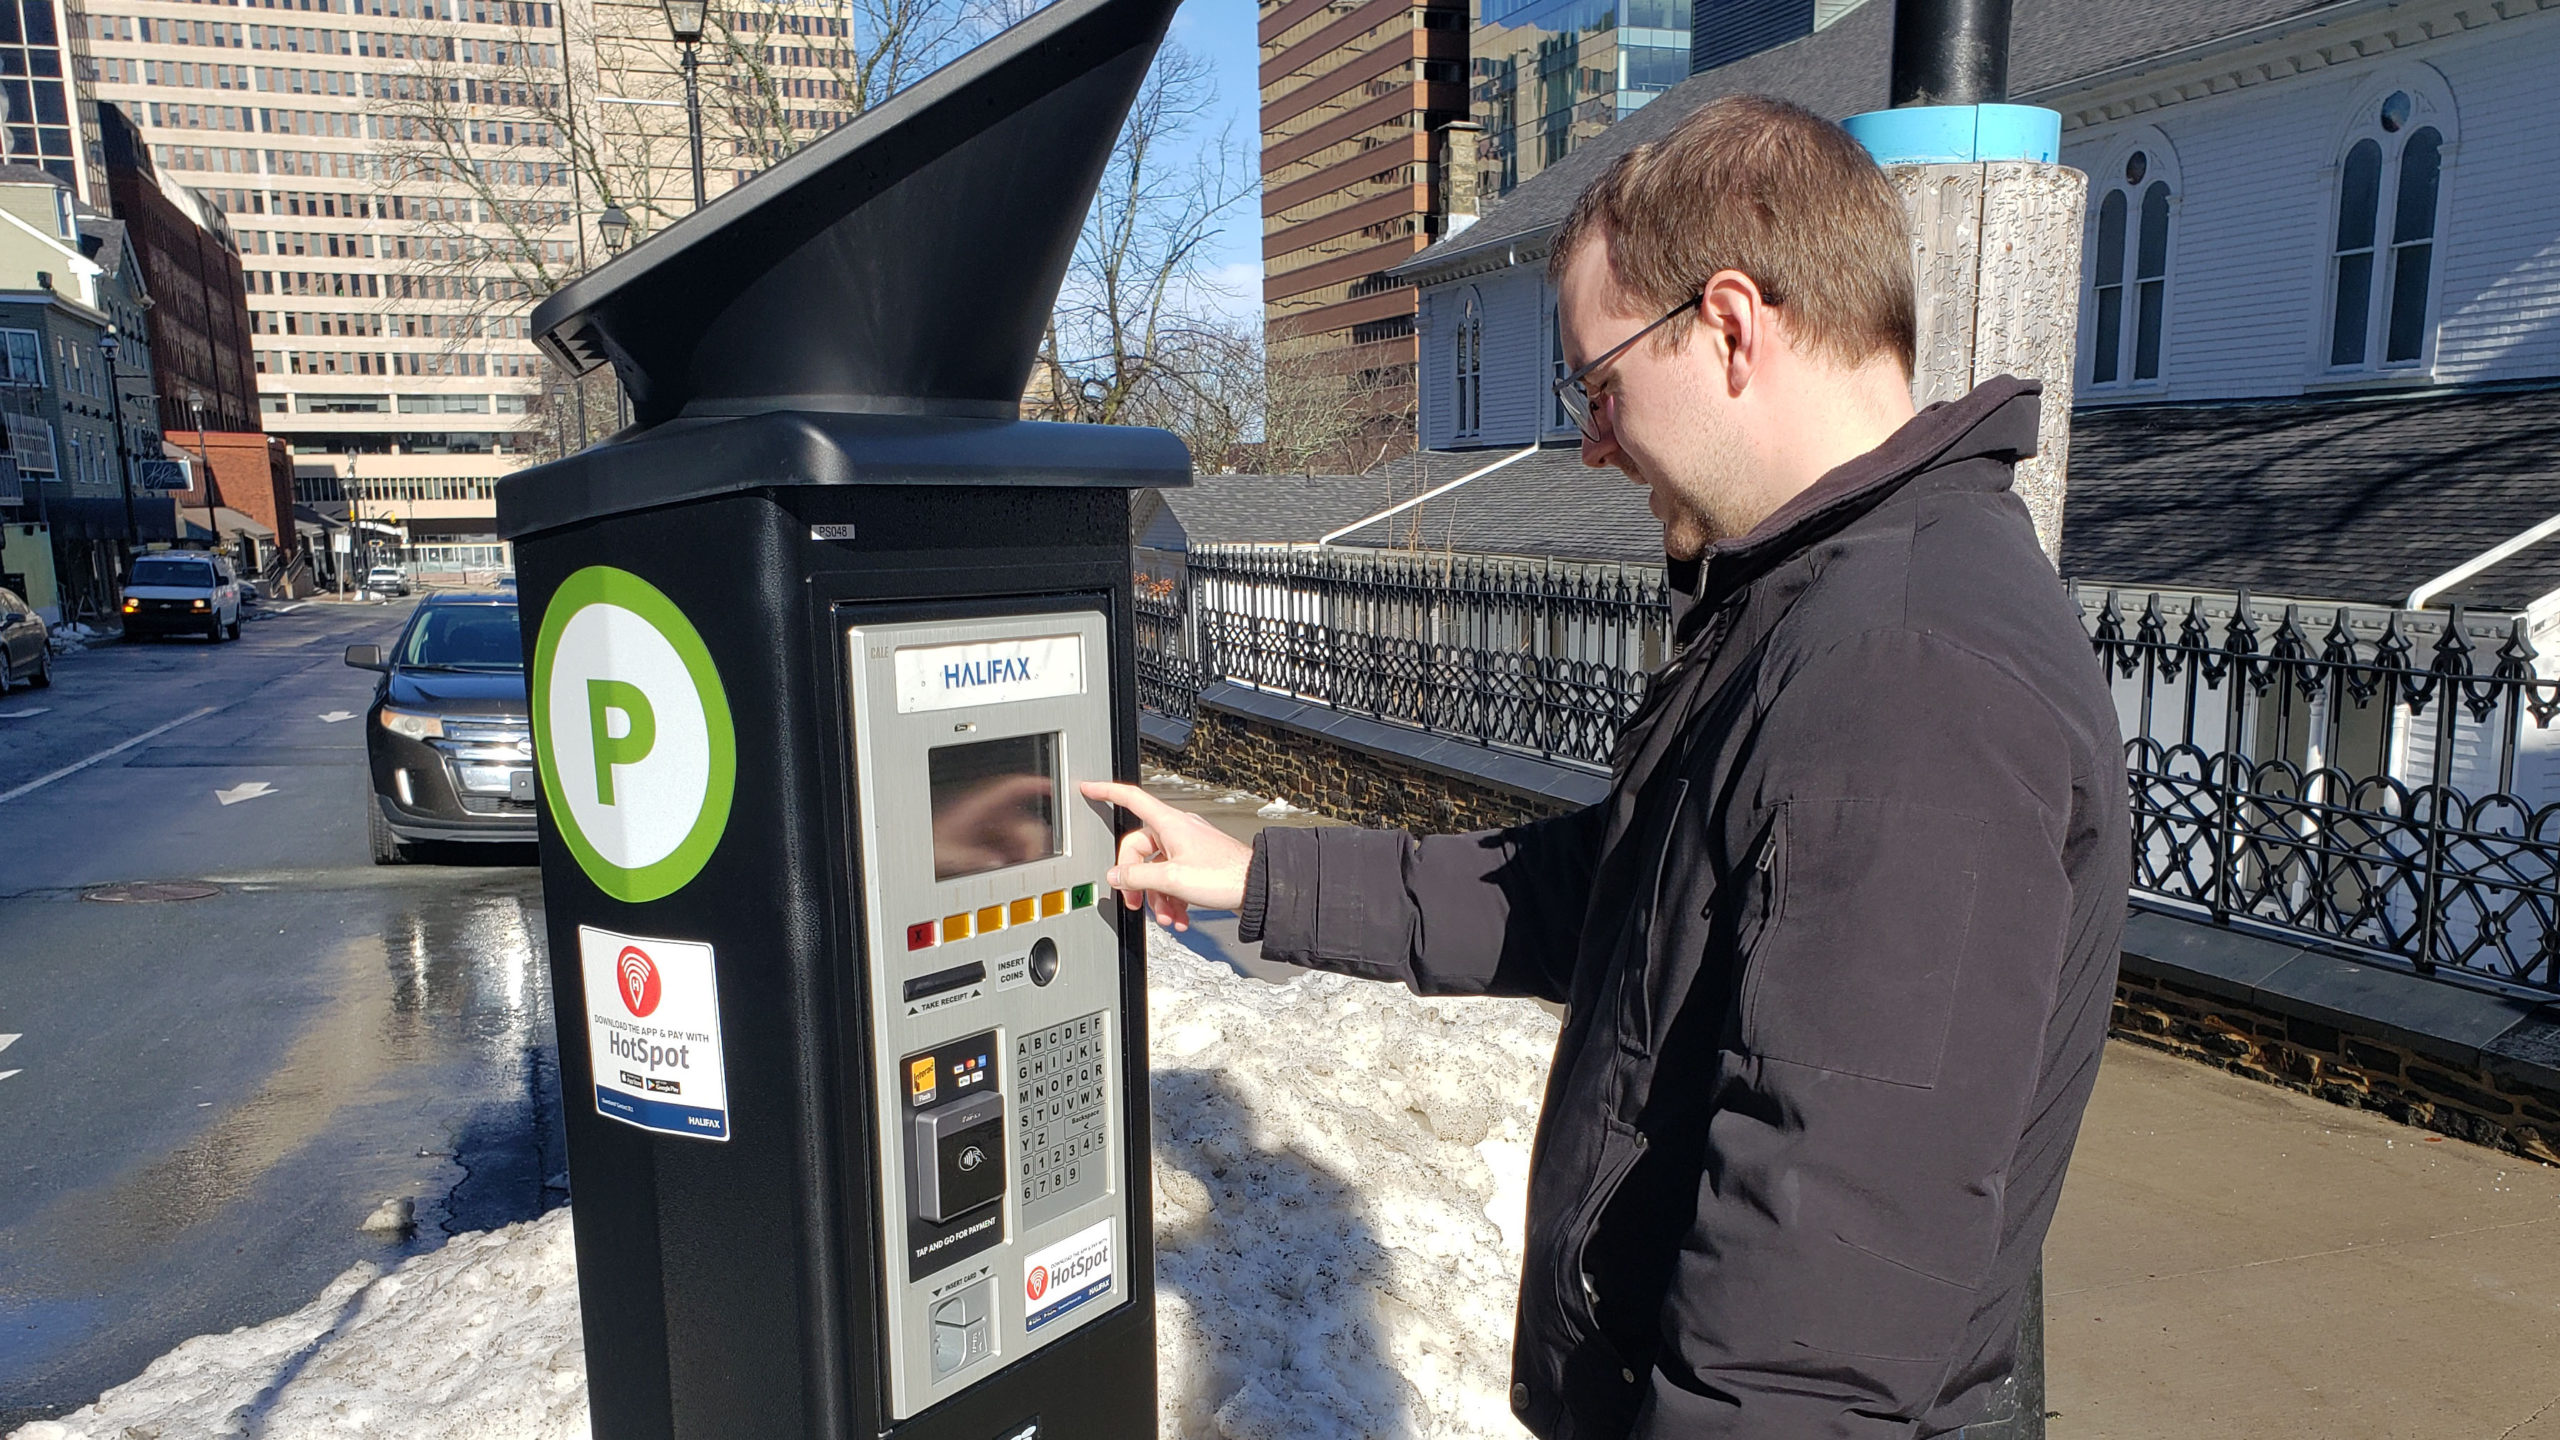 A man uses one of the digital parking stations in downtown Halifax on Feb. 3, 2020.